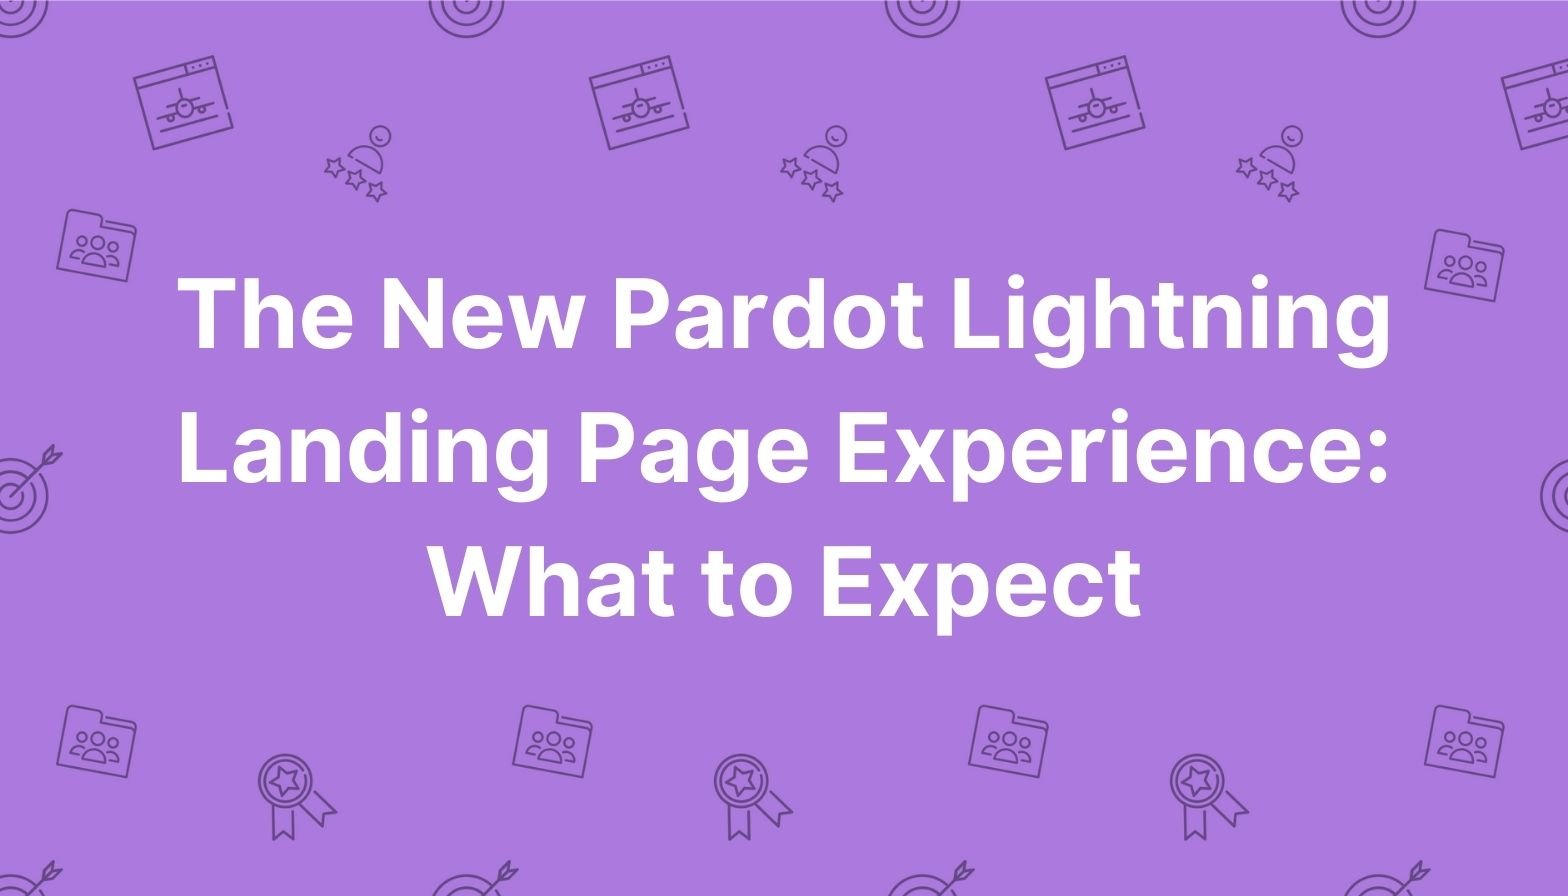 Feature image: The New Pardot Lightning Landing Page Experience What to Expect